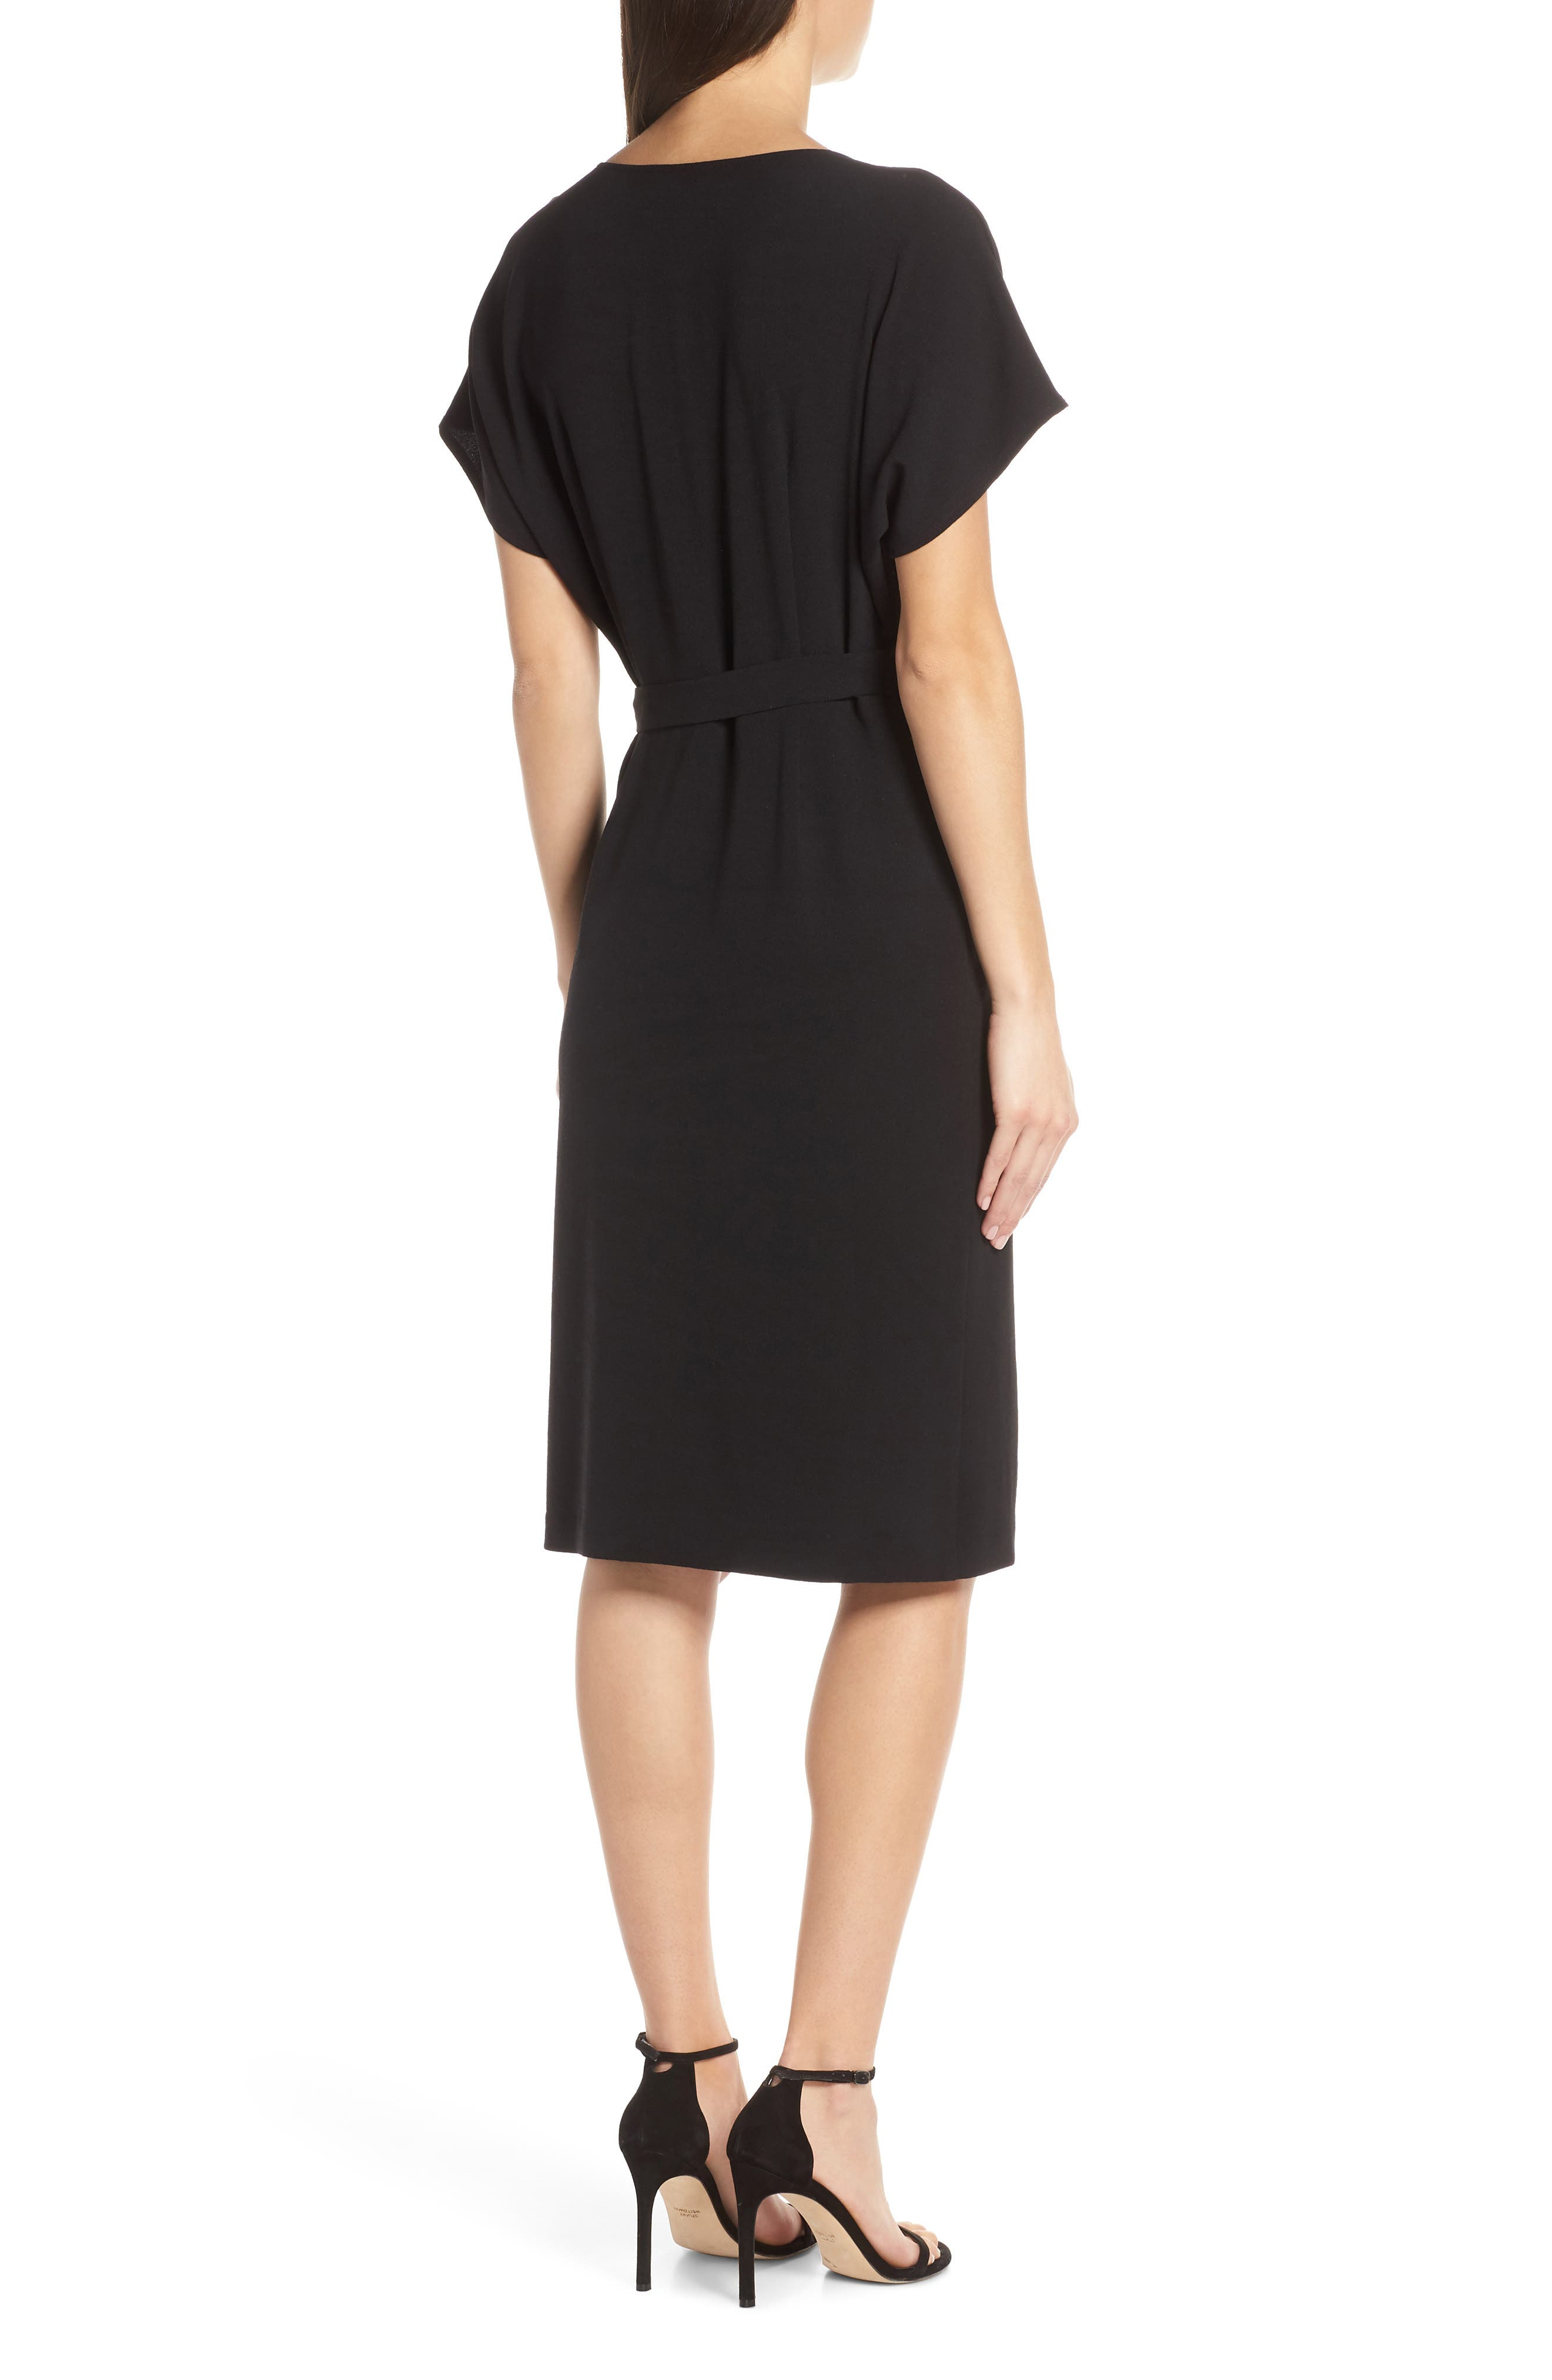 CHARLES HENRY, Faux Wrap Dress, Alternate thumbnail 2, color, BLACK